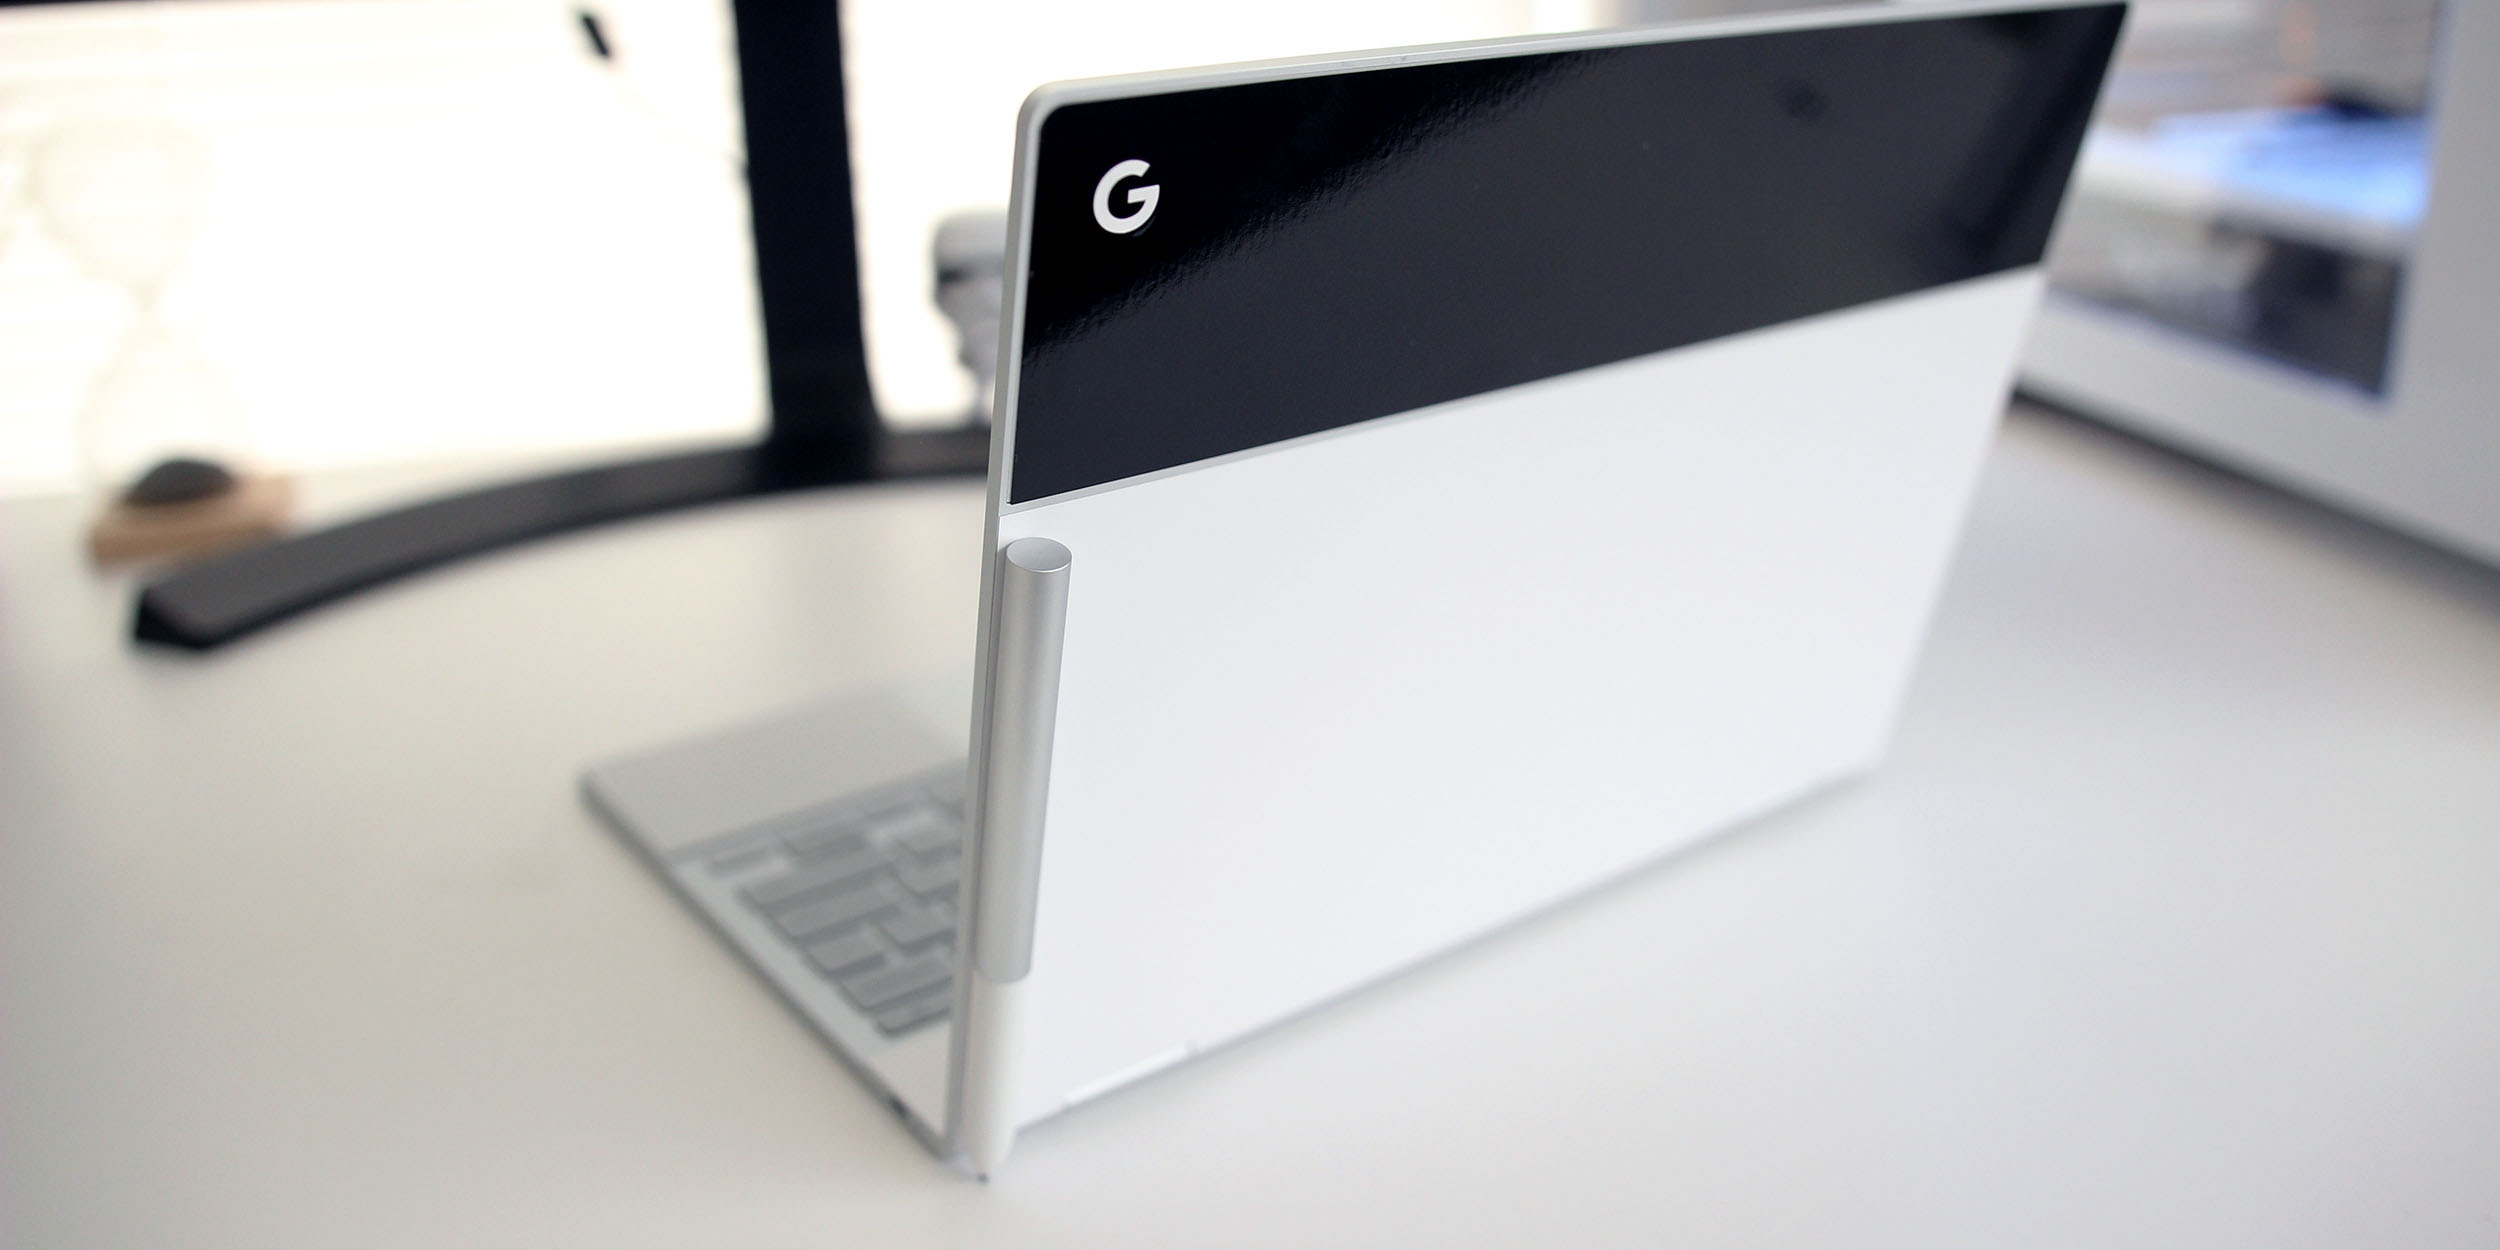 official photos 089a7 69d4f How to store the Pixelbook Pen on its lid thanks to a magnet you ...